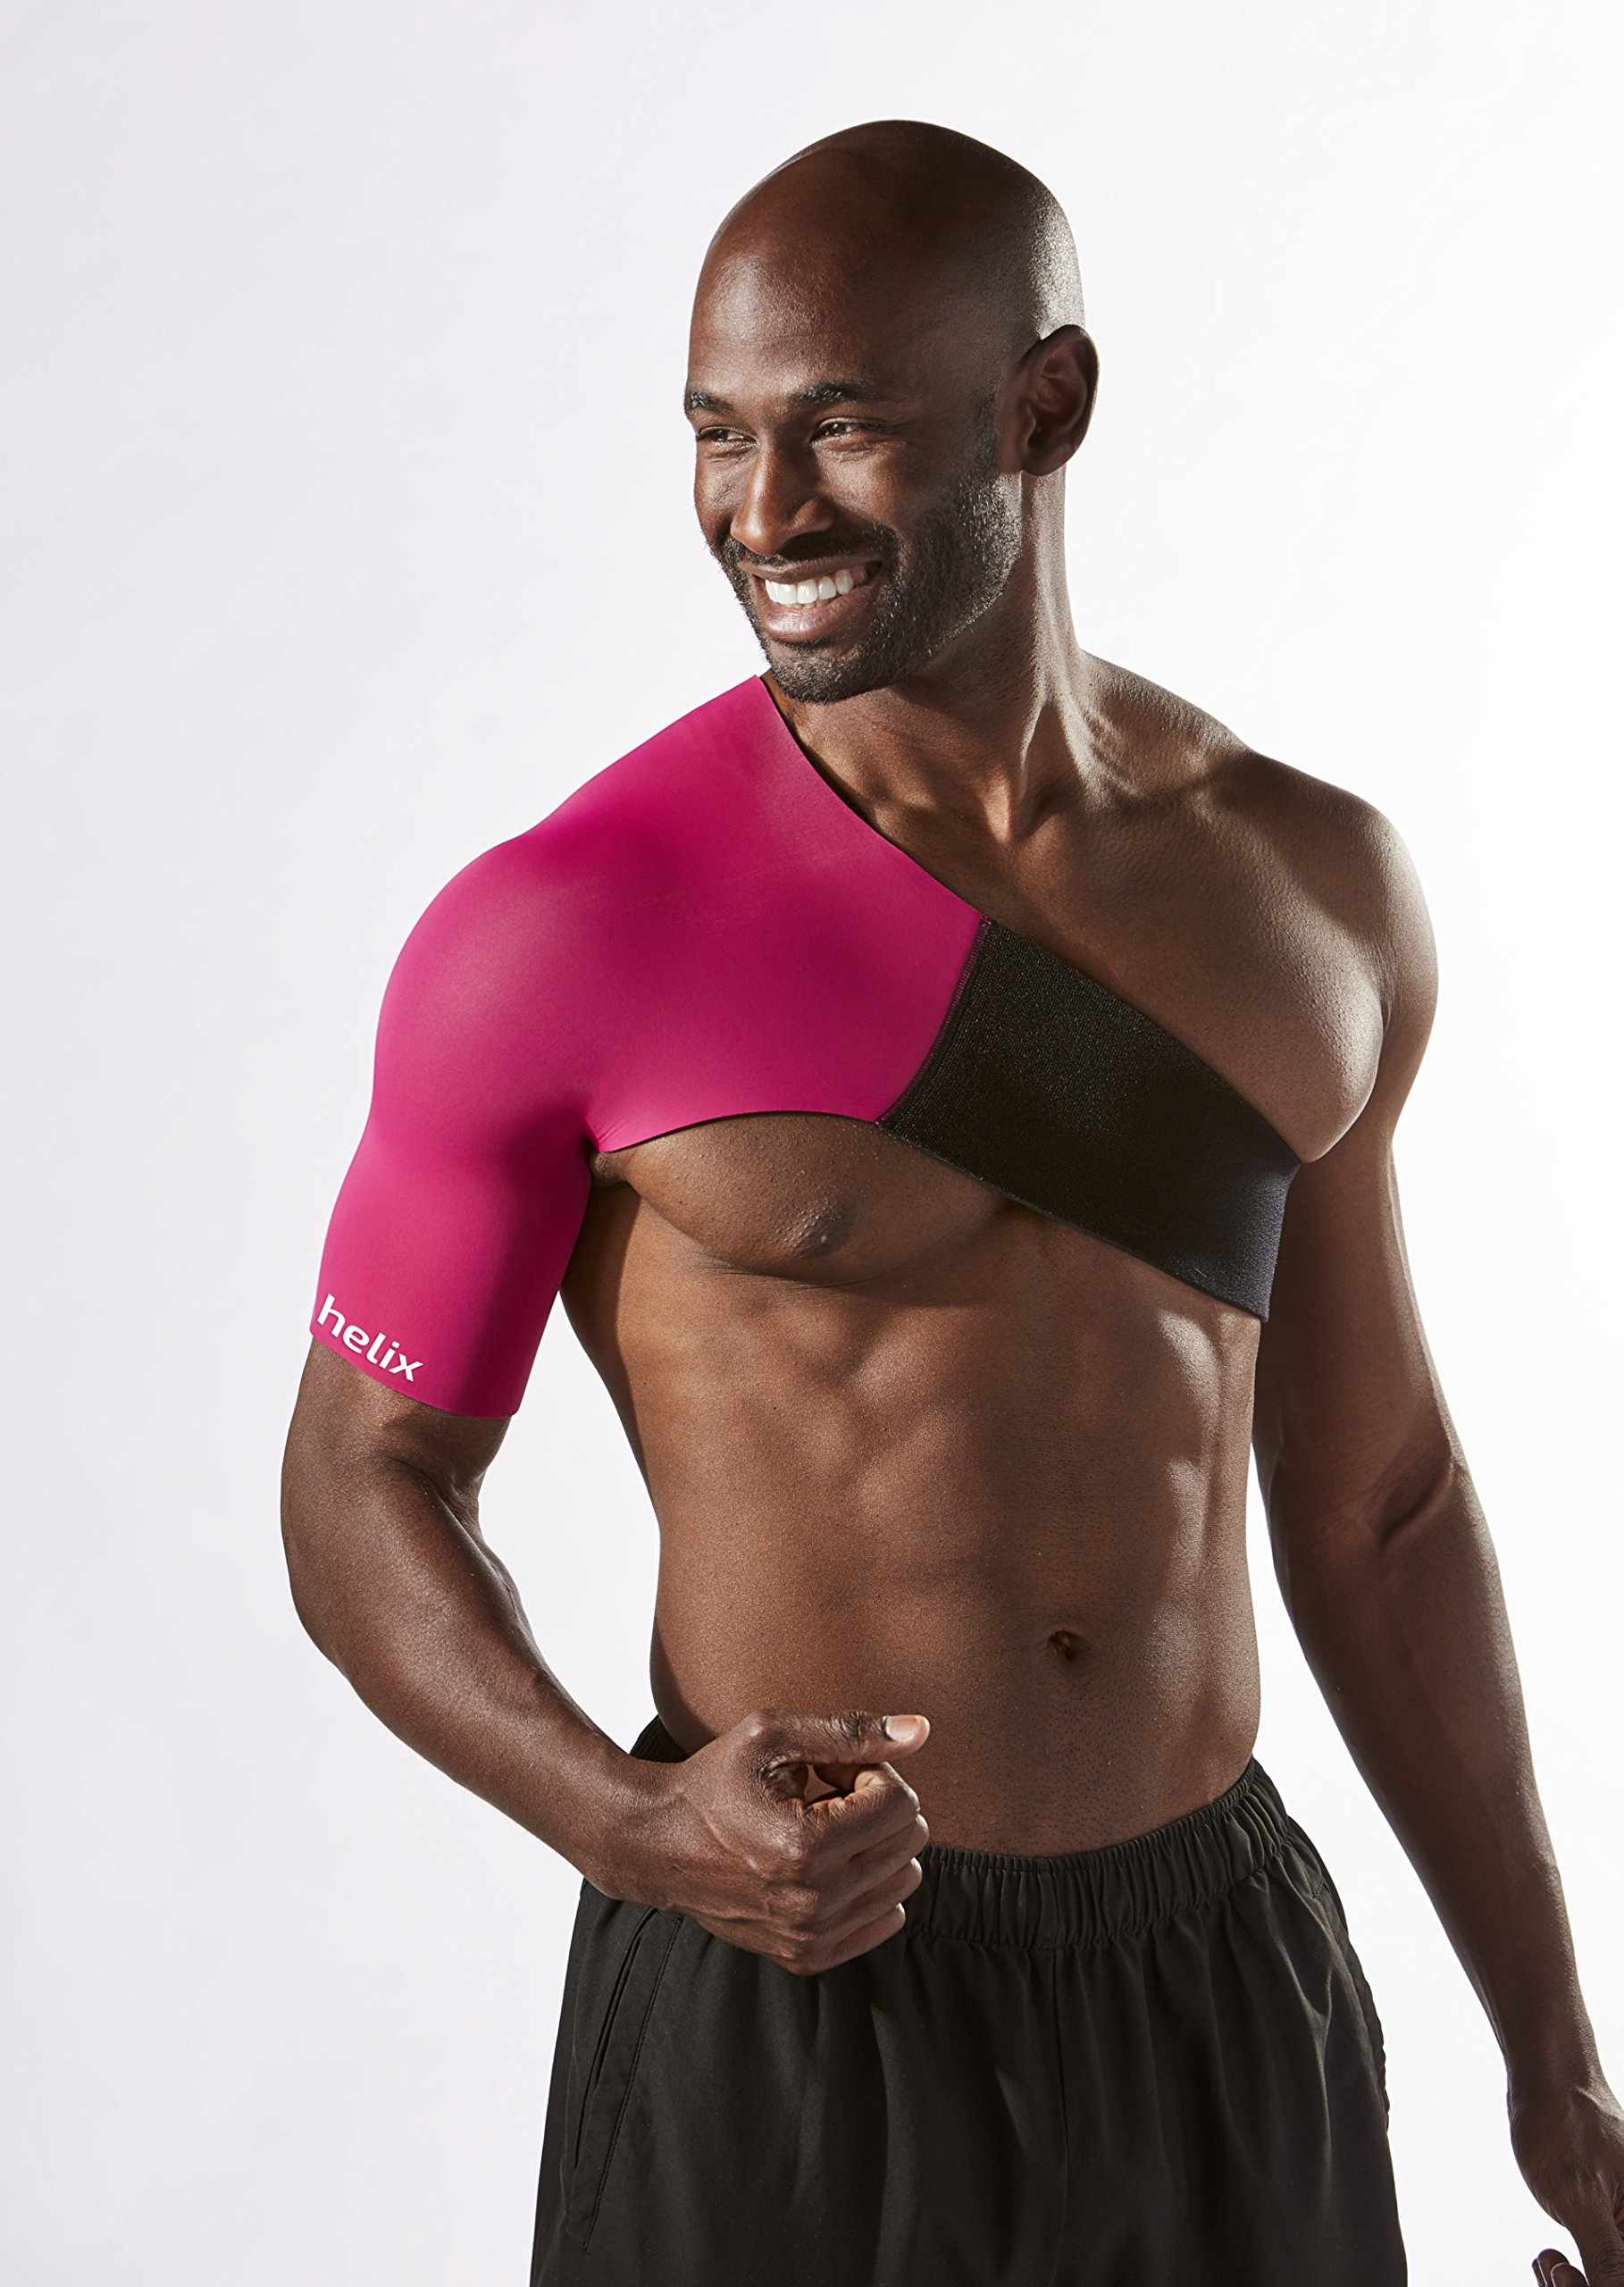 Body Helix Adjustable Shoulder Compression - Shoulder Compression Sleeve – Provides Comfortable Compression to The Shoulder Joint, Muscles, tendons and ligaments.